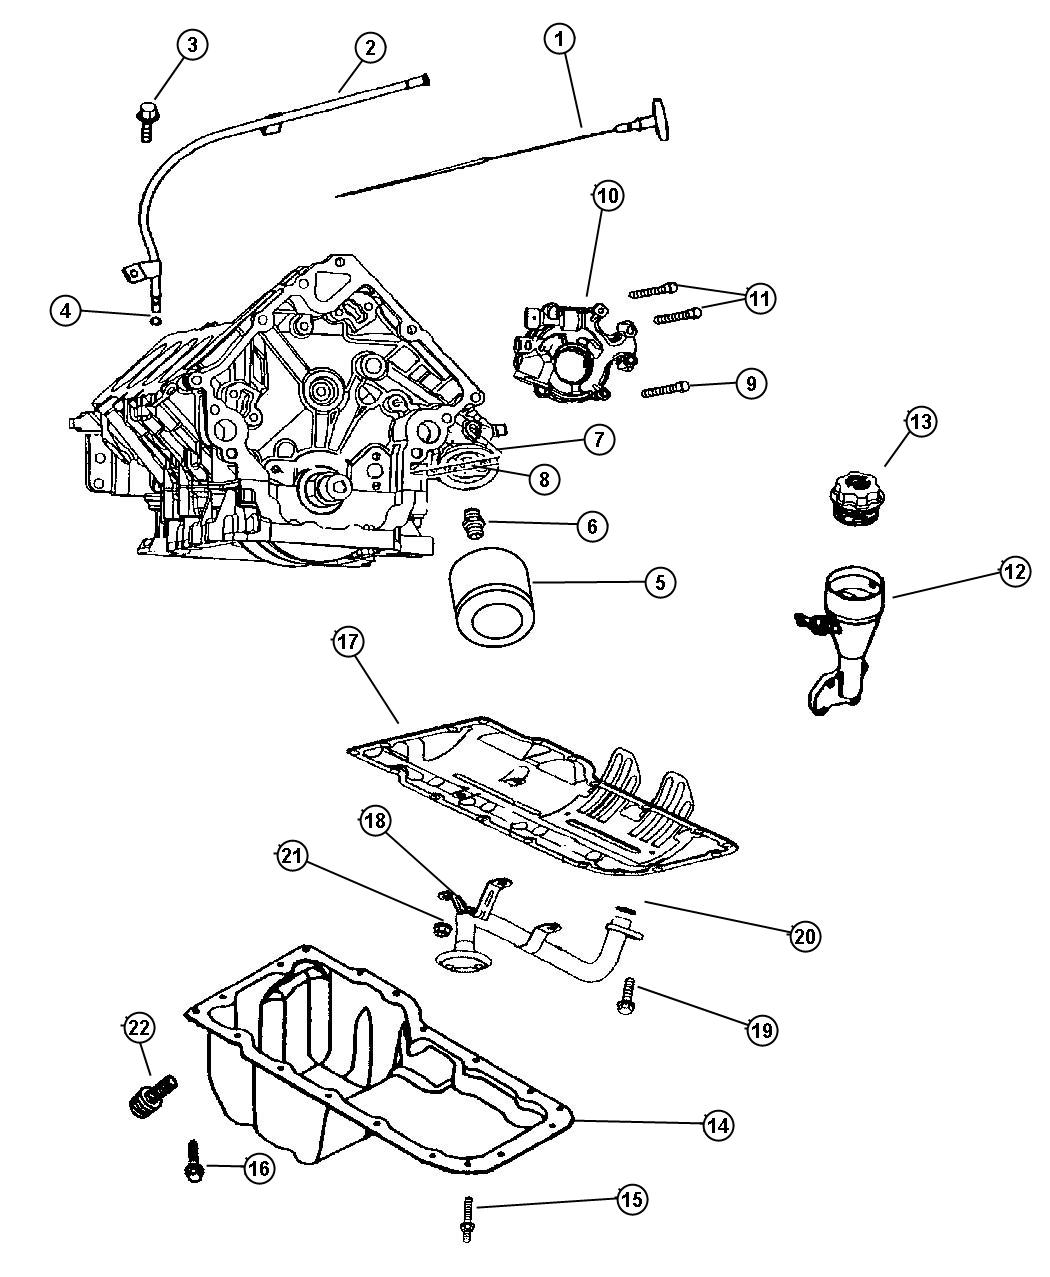 Wrg Dodge Hemi 5 7 Engine Diagram